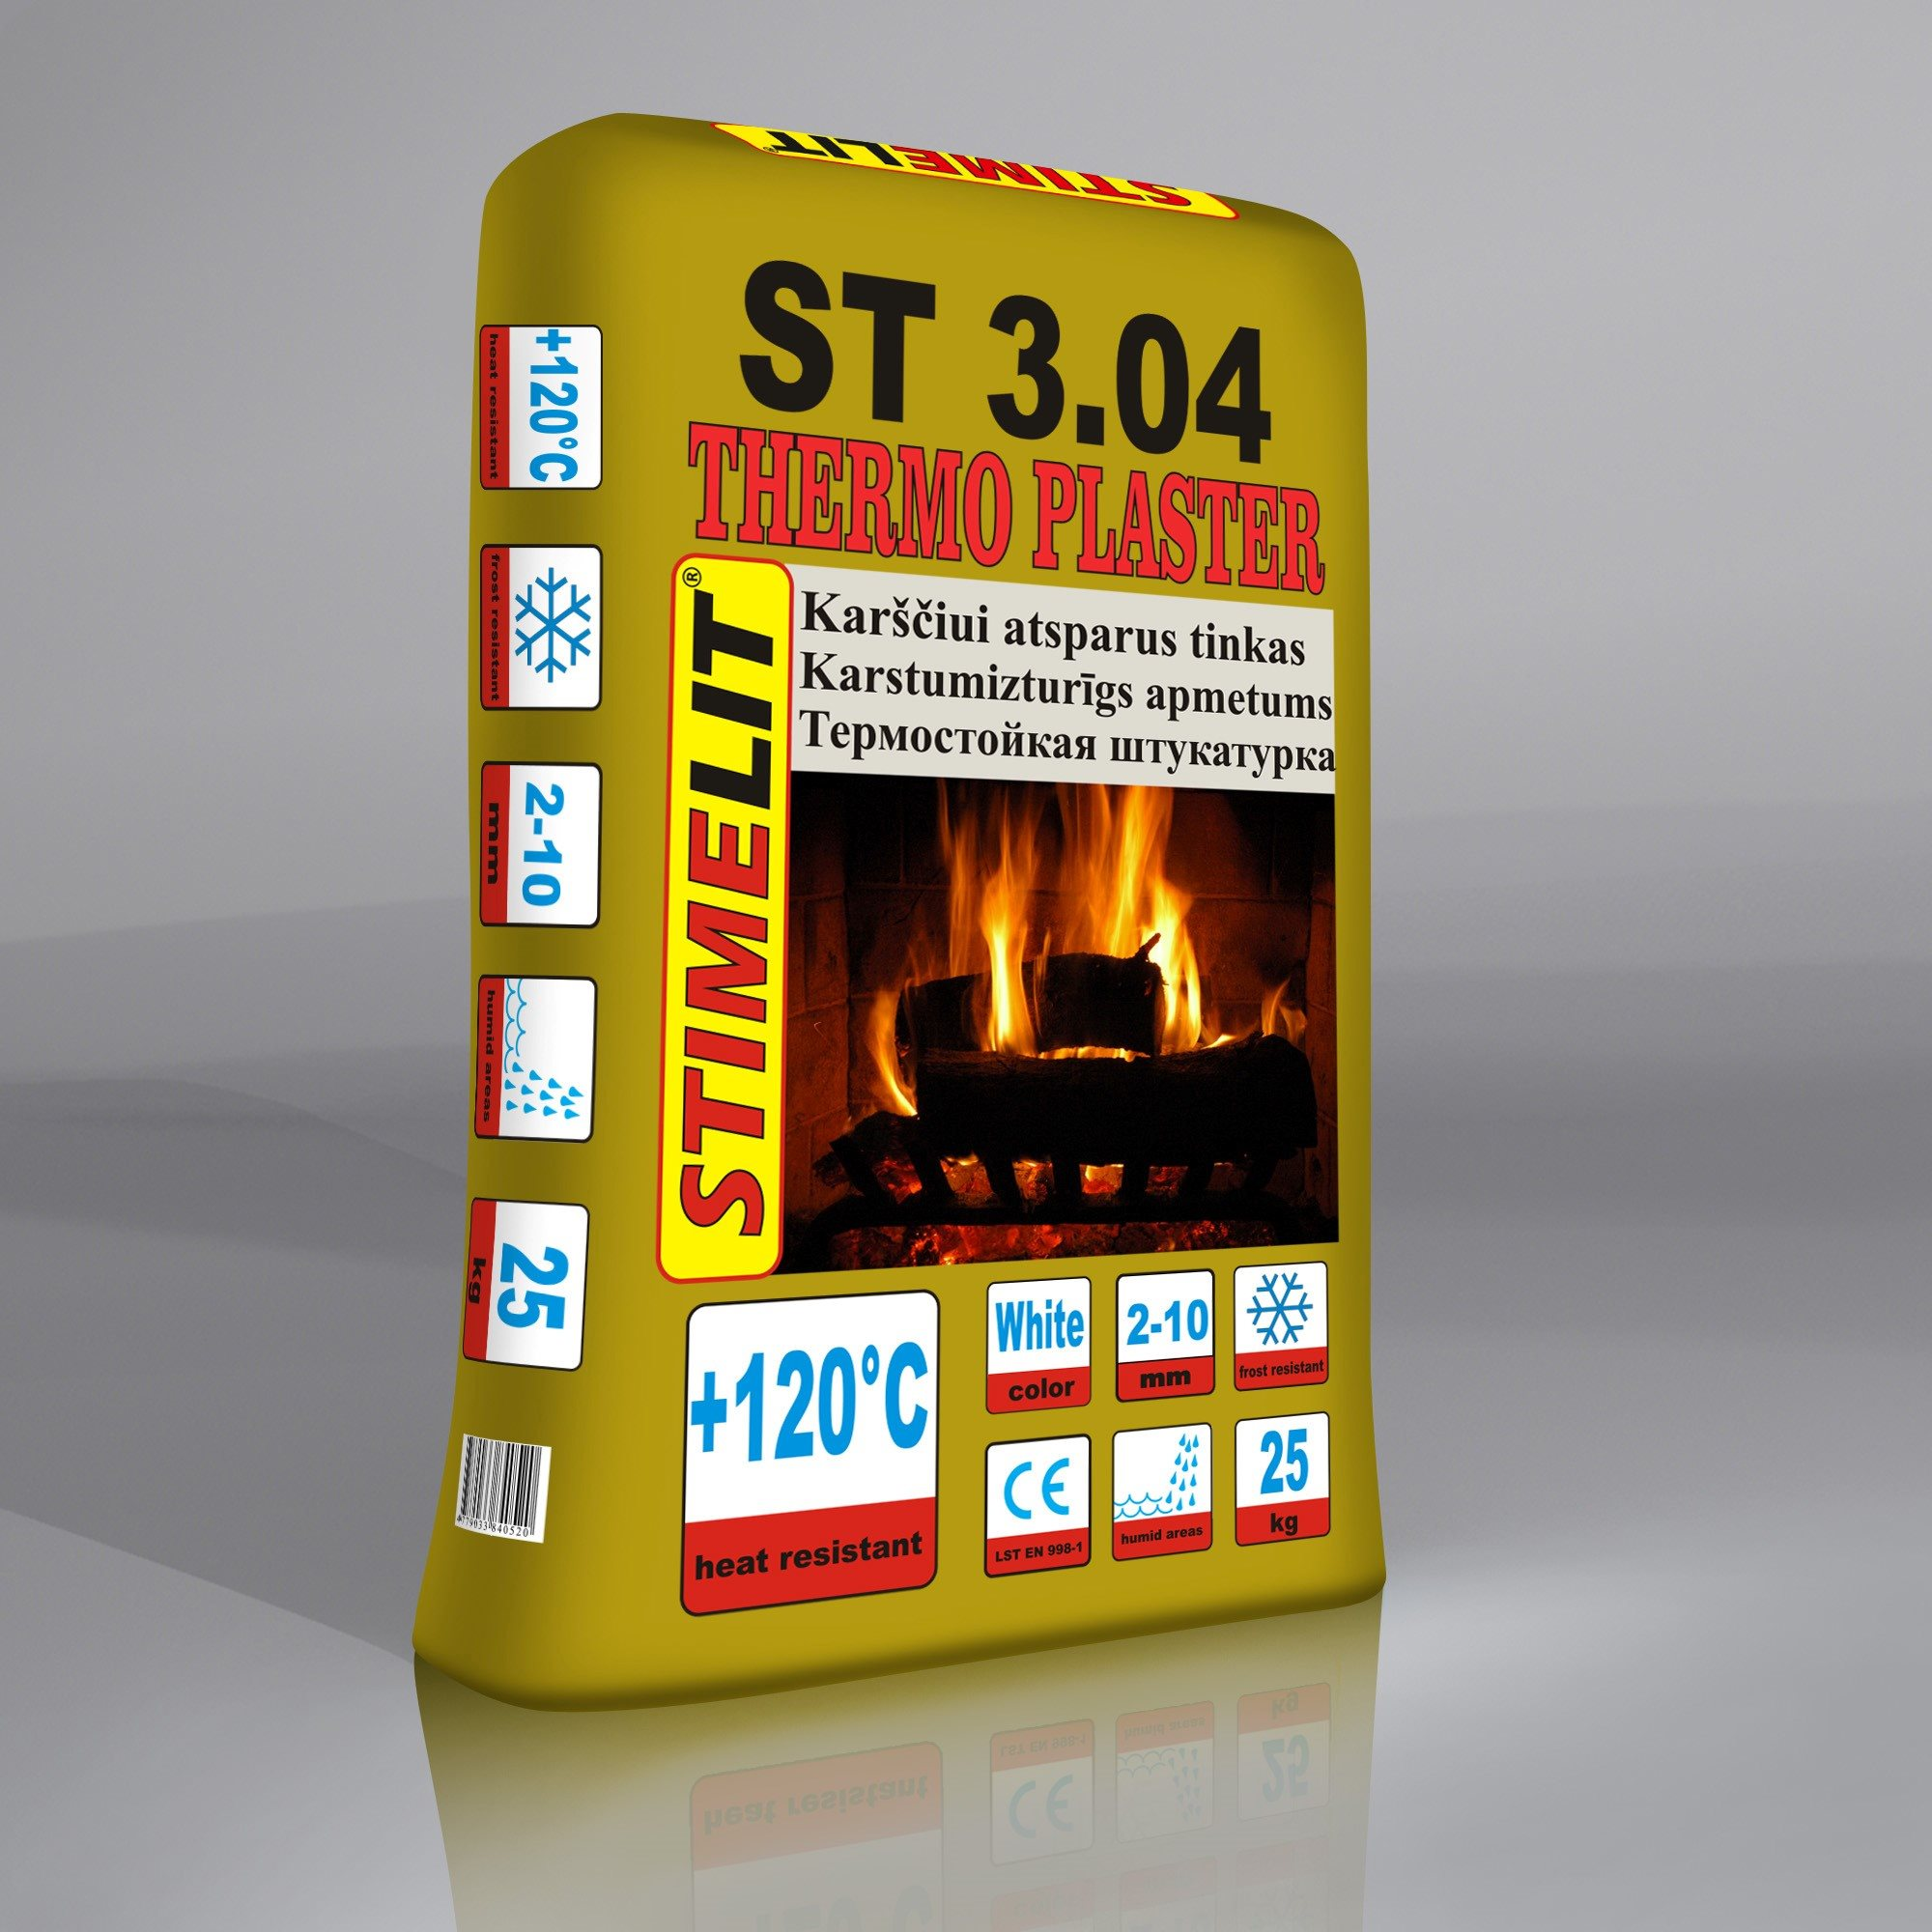 ST3.04 Thermo plaster